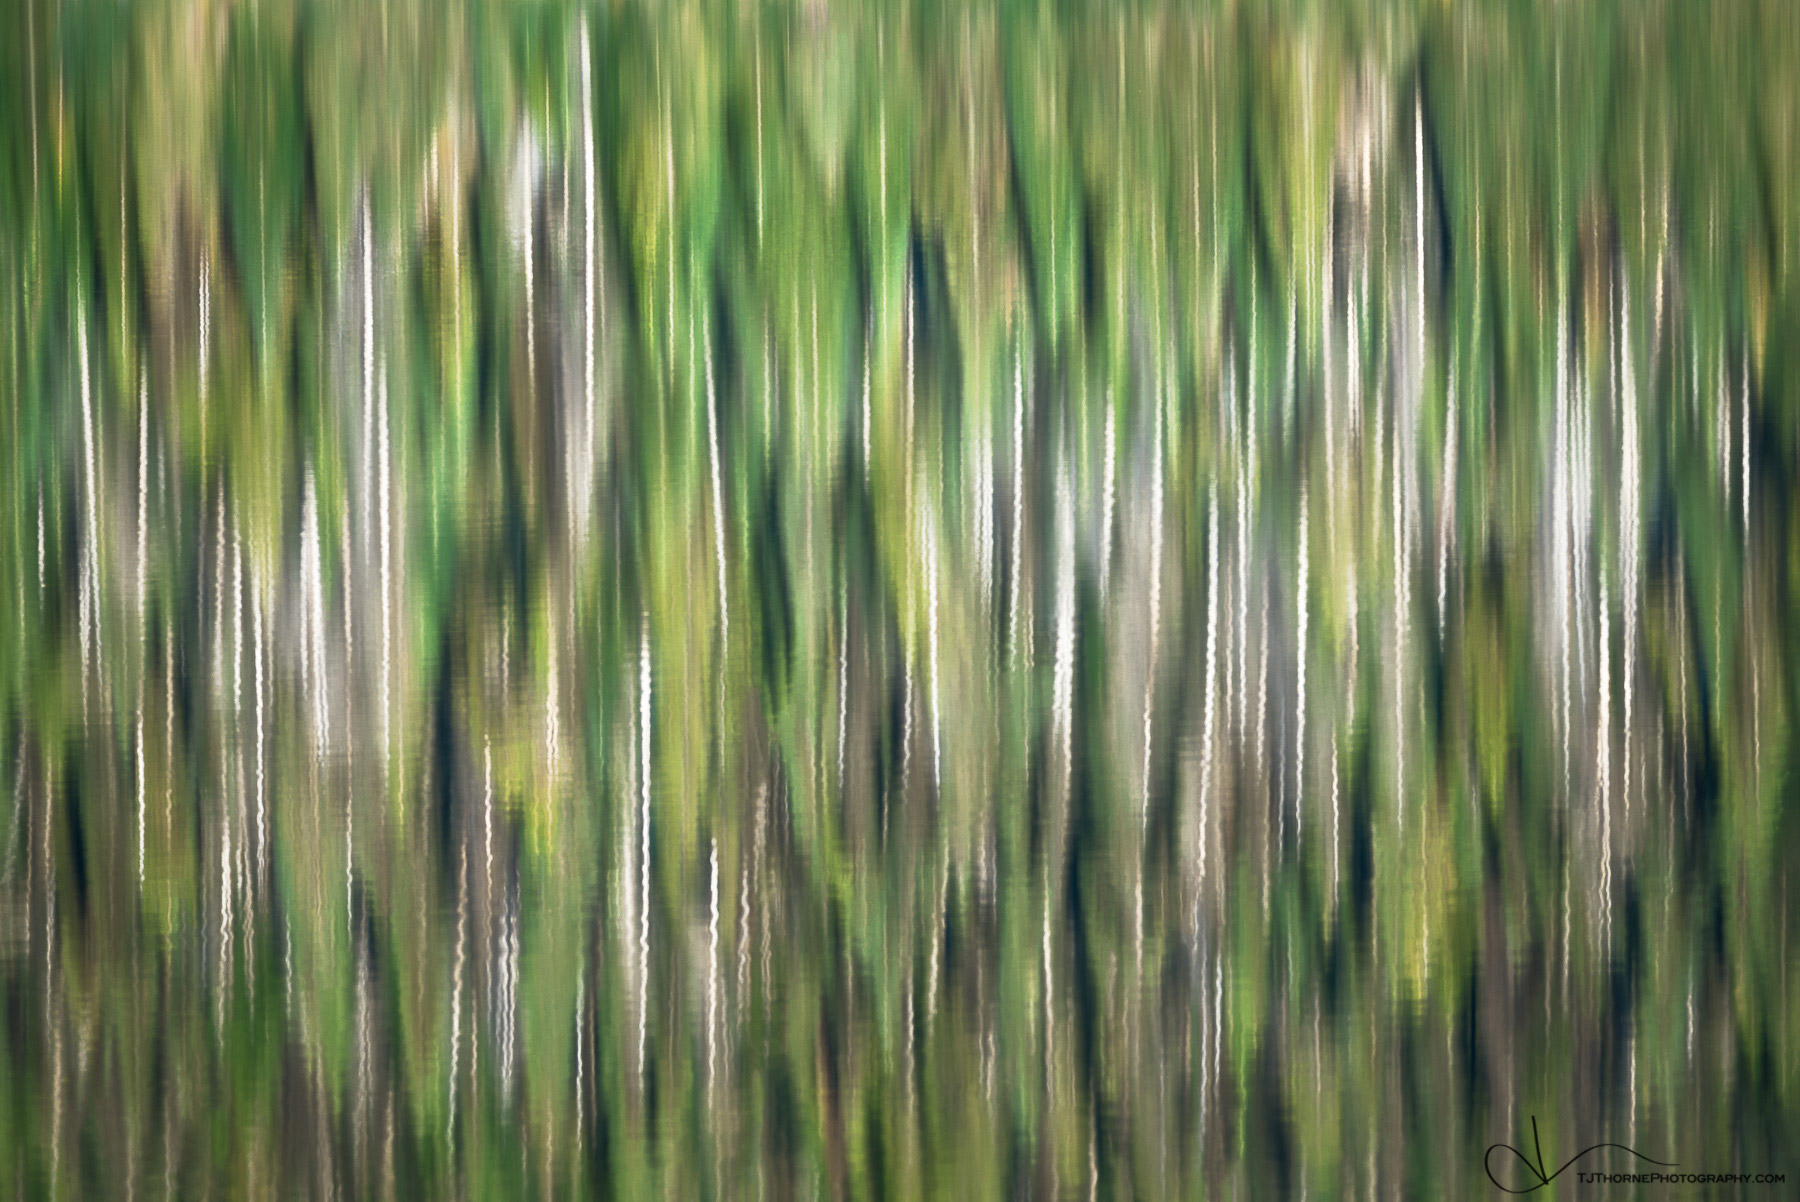 Landscape, abstract, design, green, lake, nature, oregon, pacific northwest, pine, reflection, tj thorne, trees, wallpaper, water...